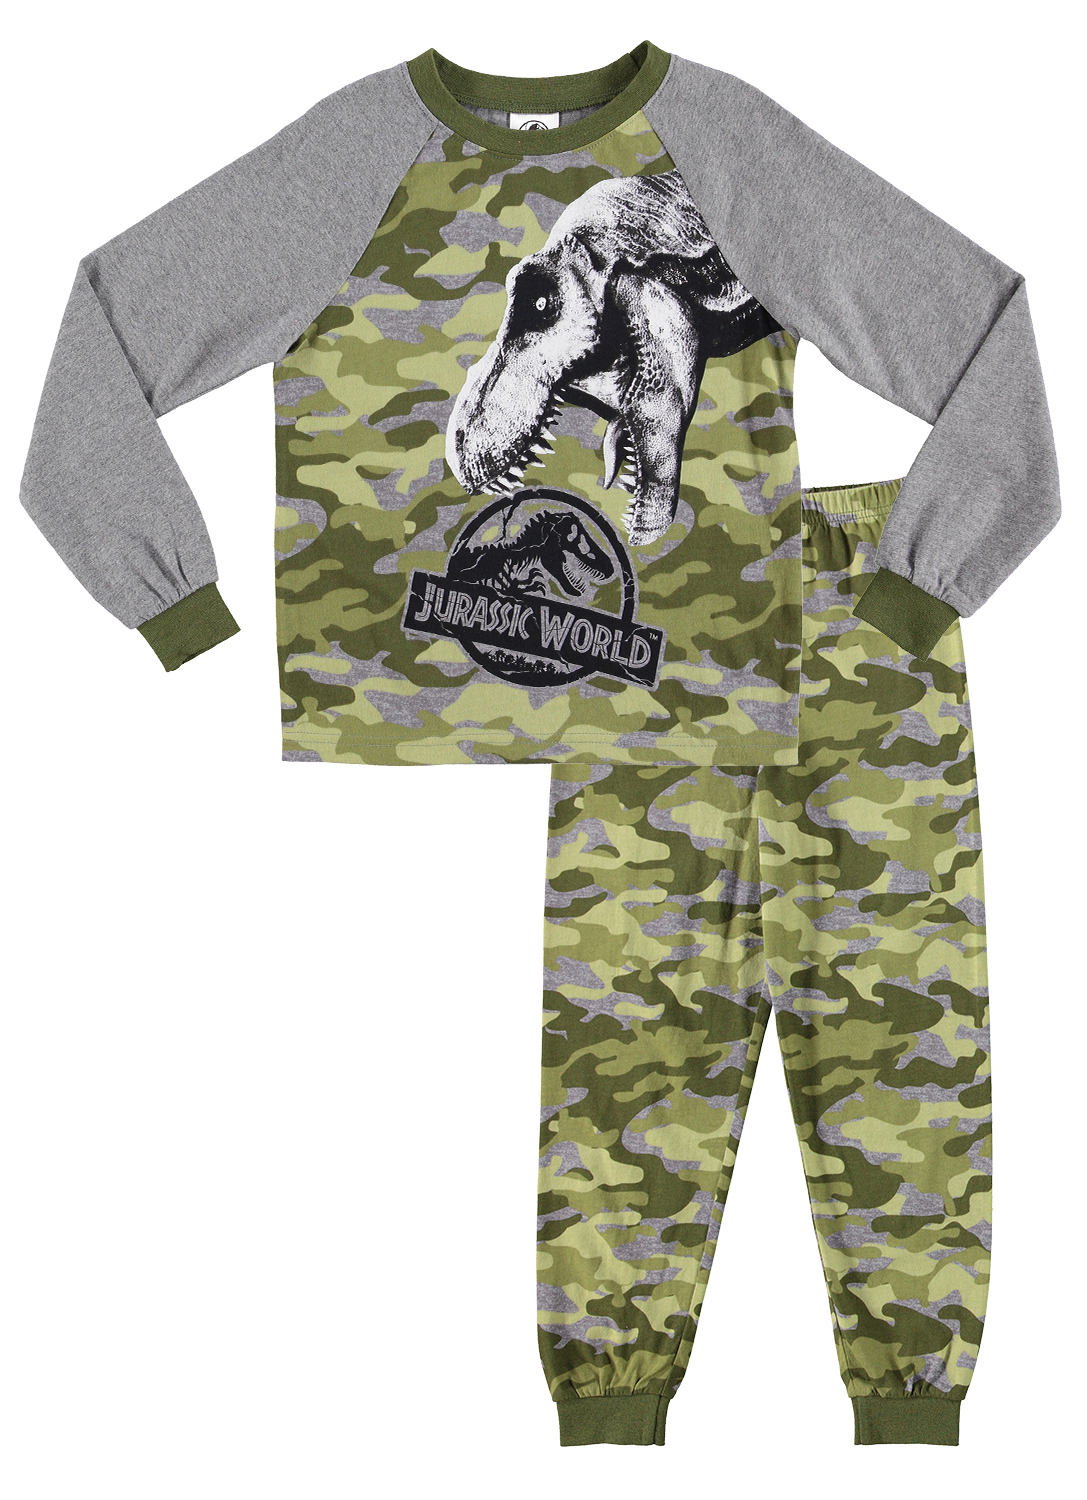 Childrens Boys Jurassic Park Pjs Pyjamas Pajamas Nightwear Sleepwear